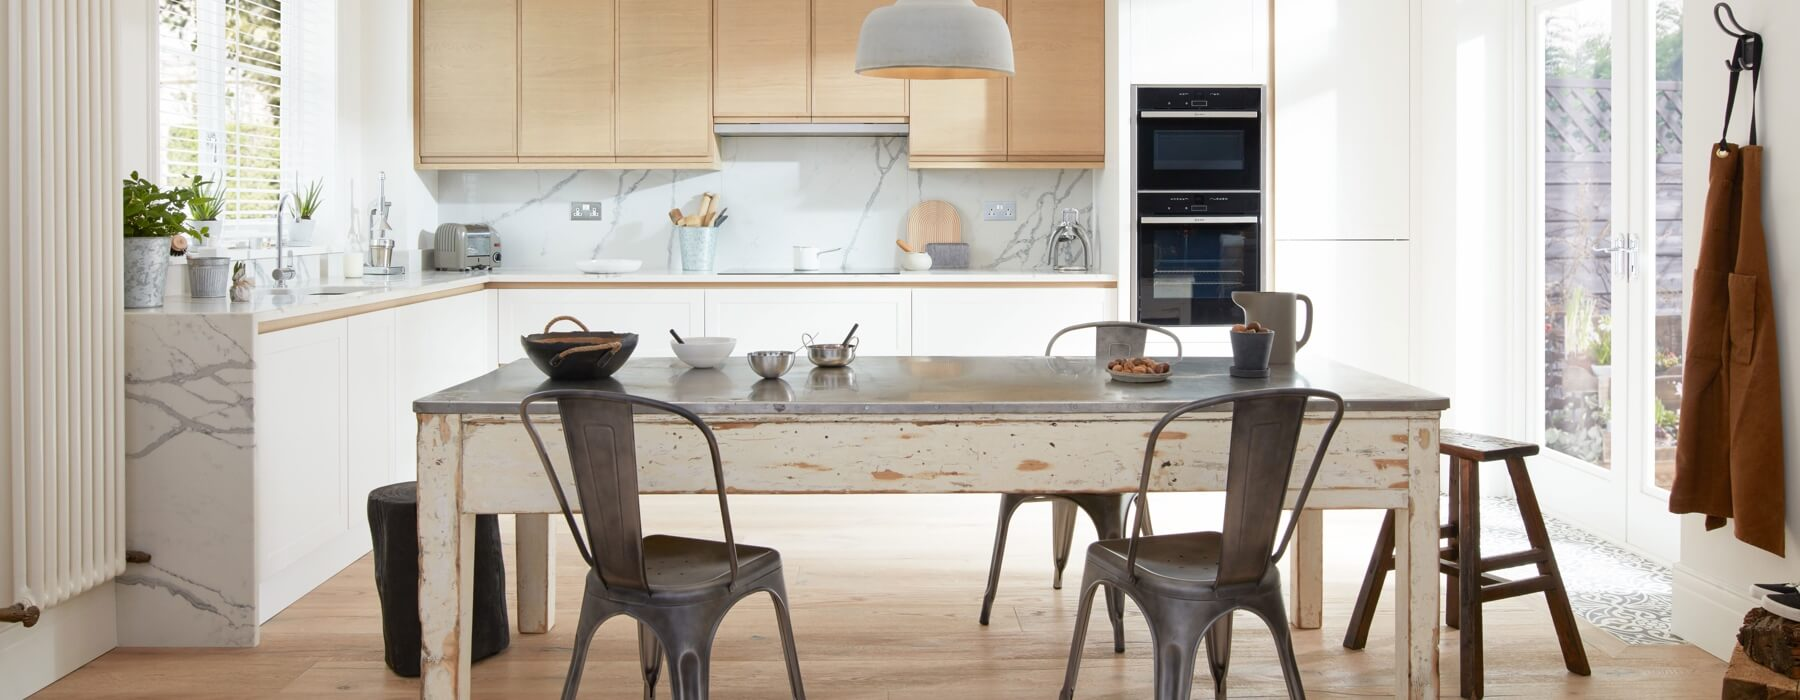 Alchemy Kitchens with table and chairs